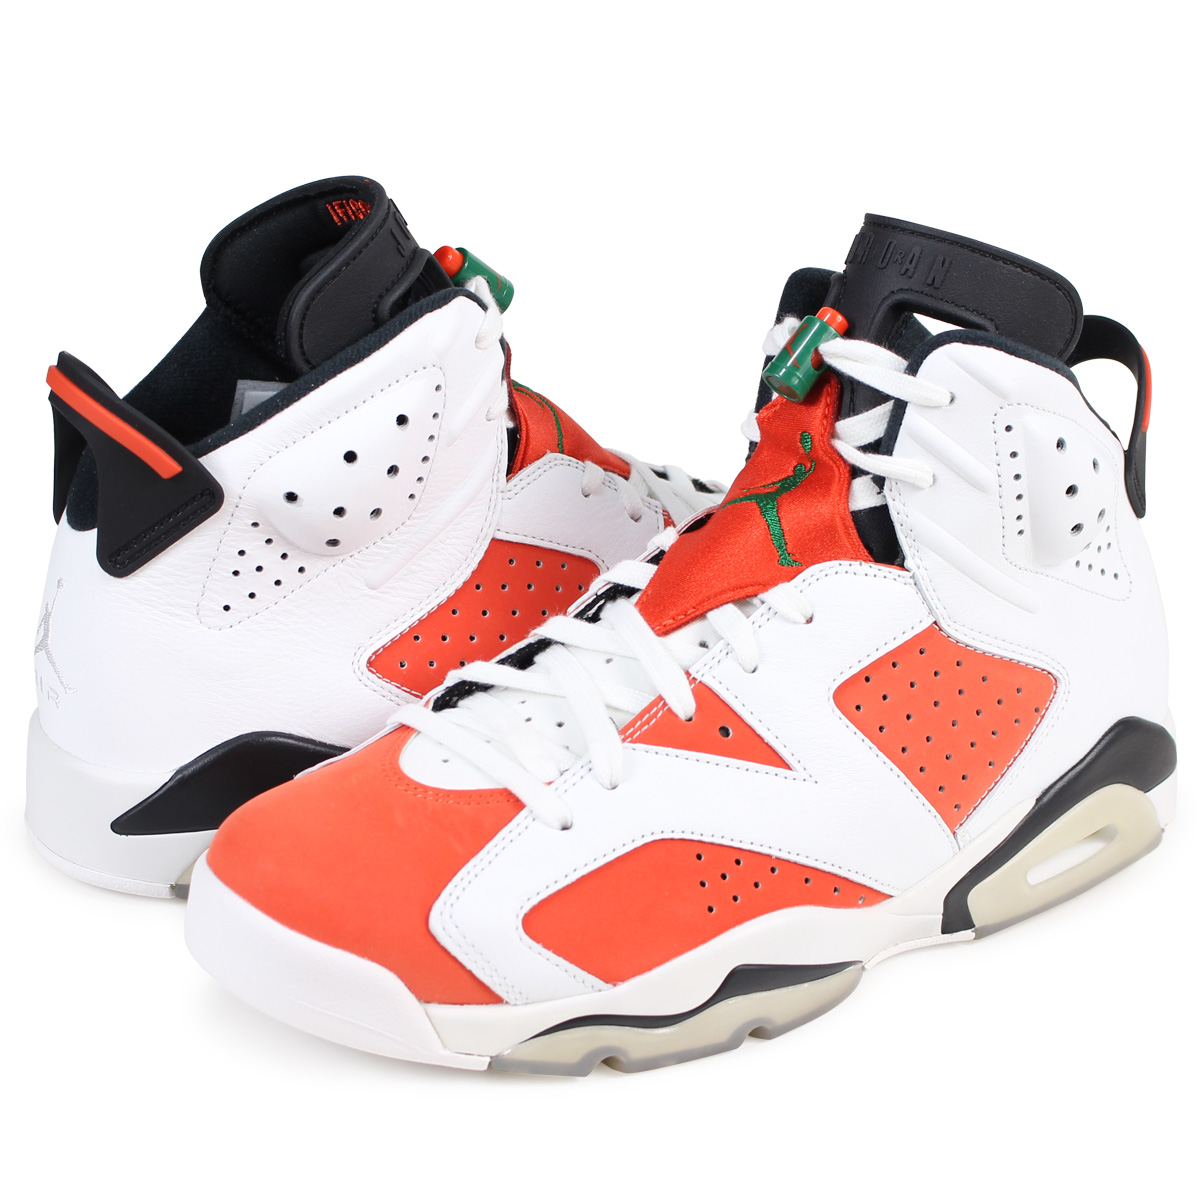 8cc8481b123 Whats up Sports  NIKE AIR JORDAN 6 RETRO GATORADE Nike Air Jordan 6  nostalgic sneakers 384